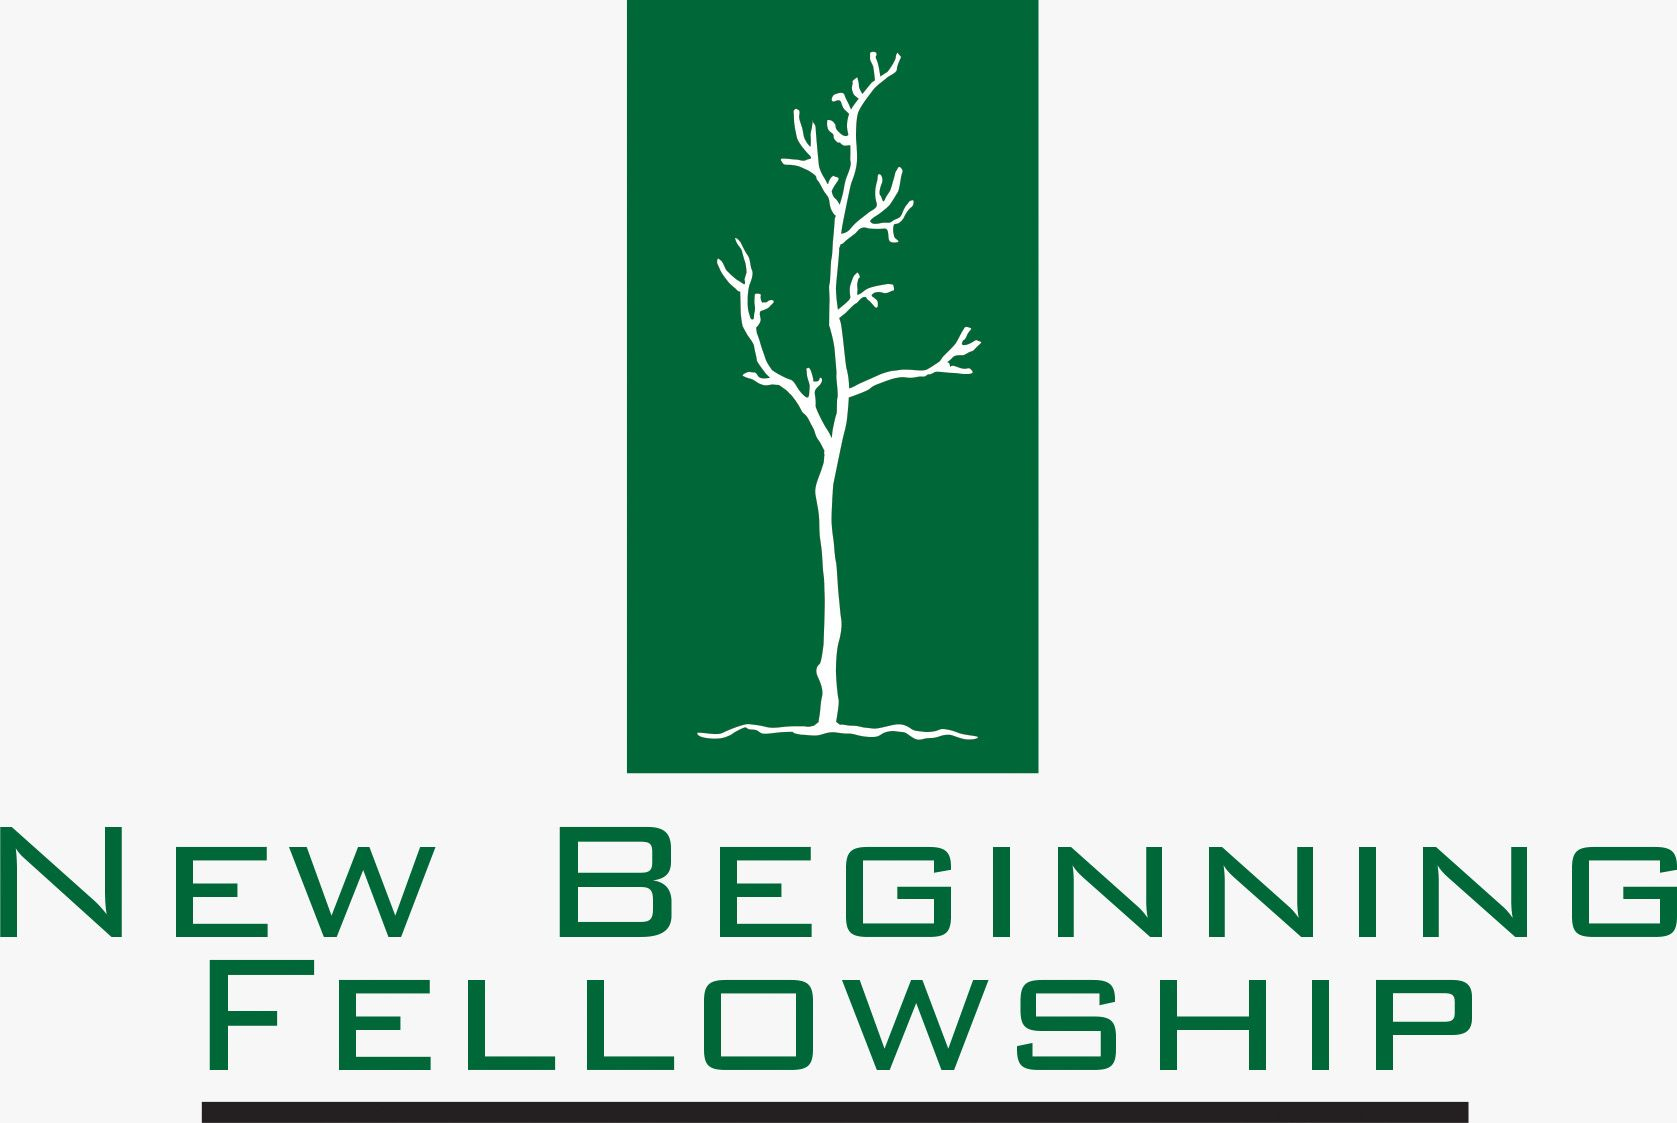 New Beginning Fellowship